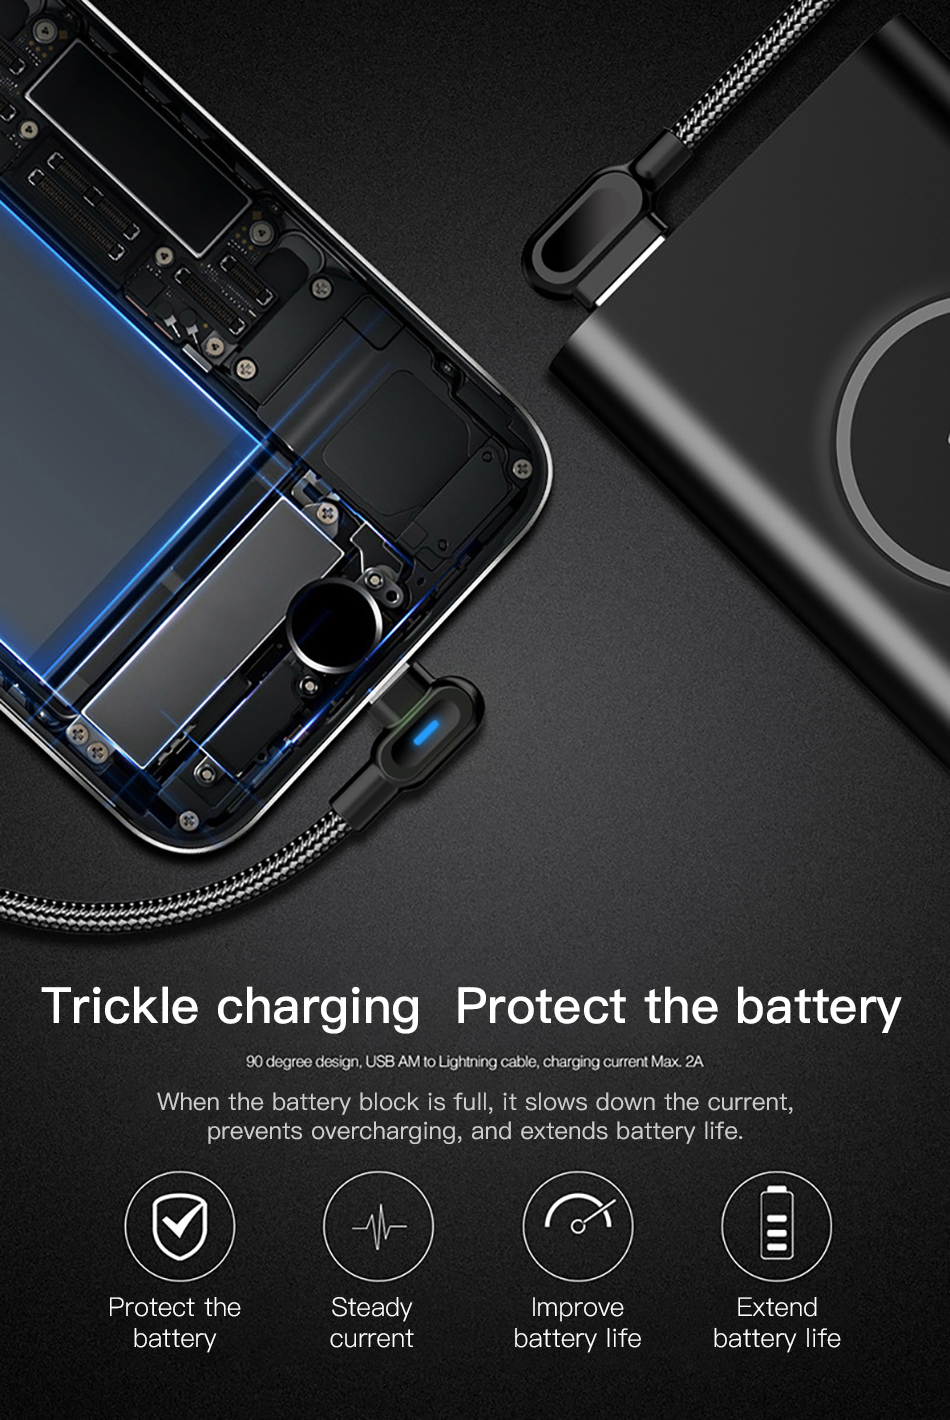 !ACCEZZ 90 Degree Micro USB Cable Fast Charging For Xiaomi Redmi Note 5 Pro Samsung S6 S7 Huawei Tablet Android Data Sync Cables (12)